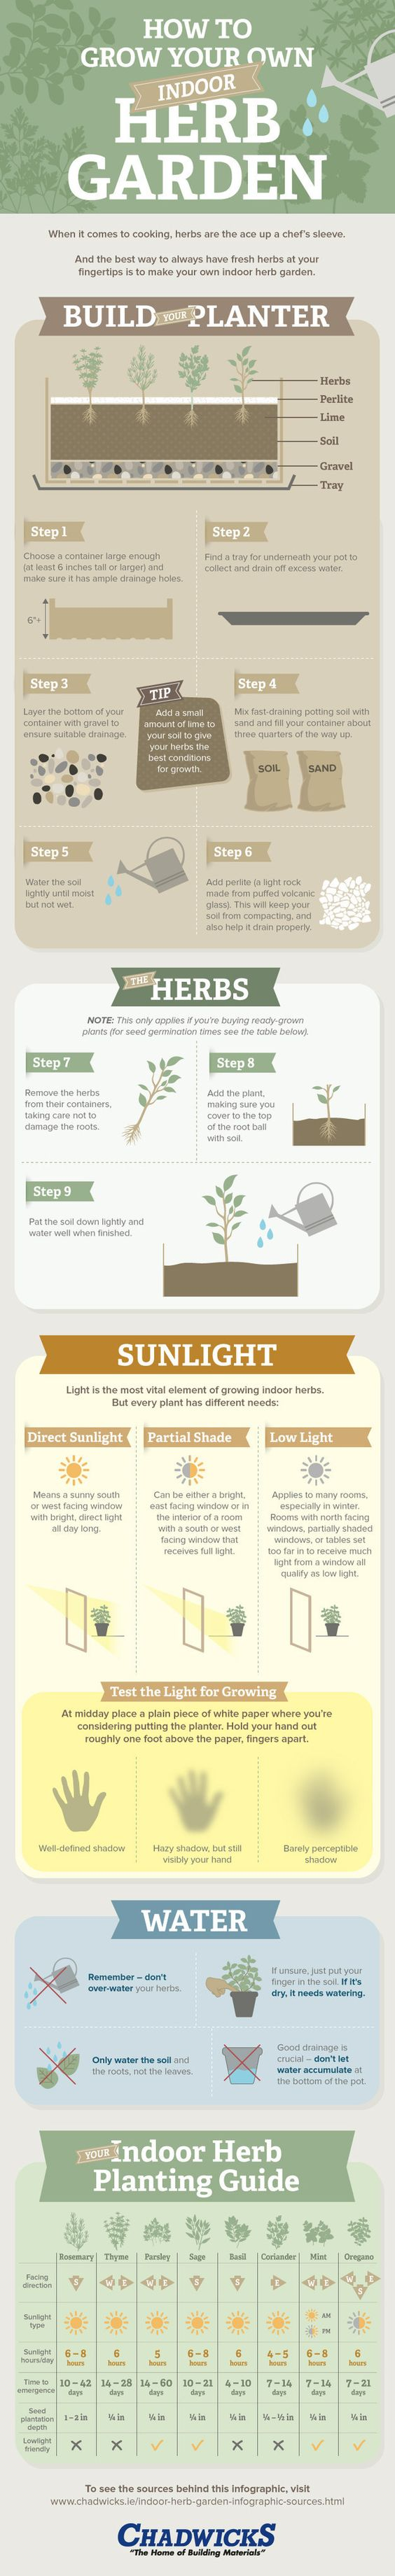 If you plan to grow your herbs indoors, read through this infographic for some helpful hints. | 23 Diagrams That Make Gardening So Much Easier: